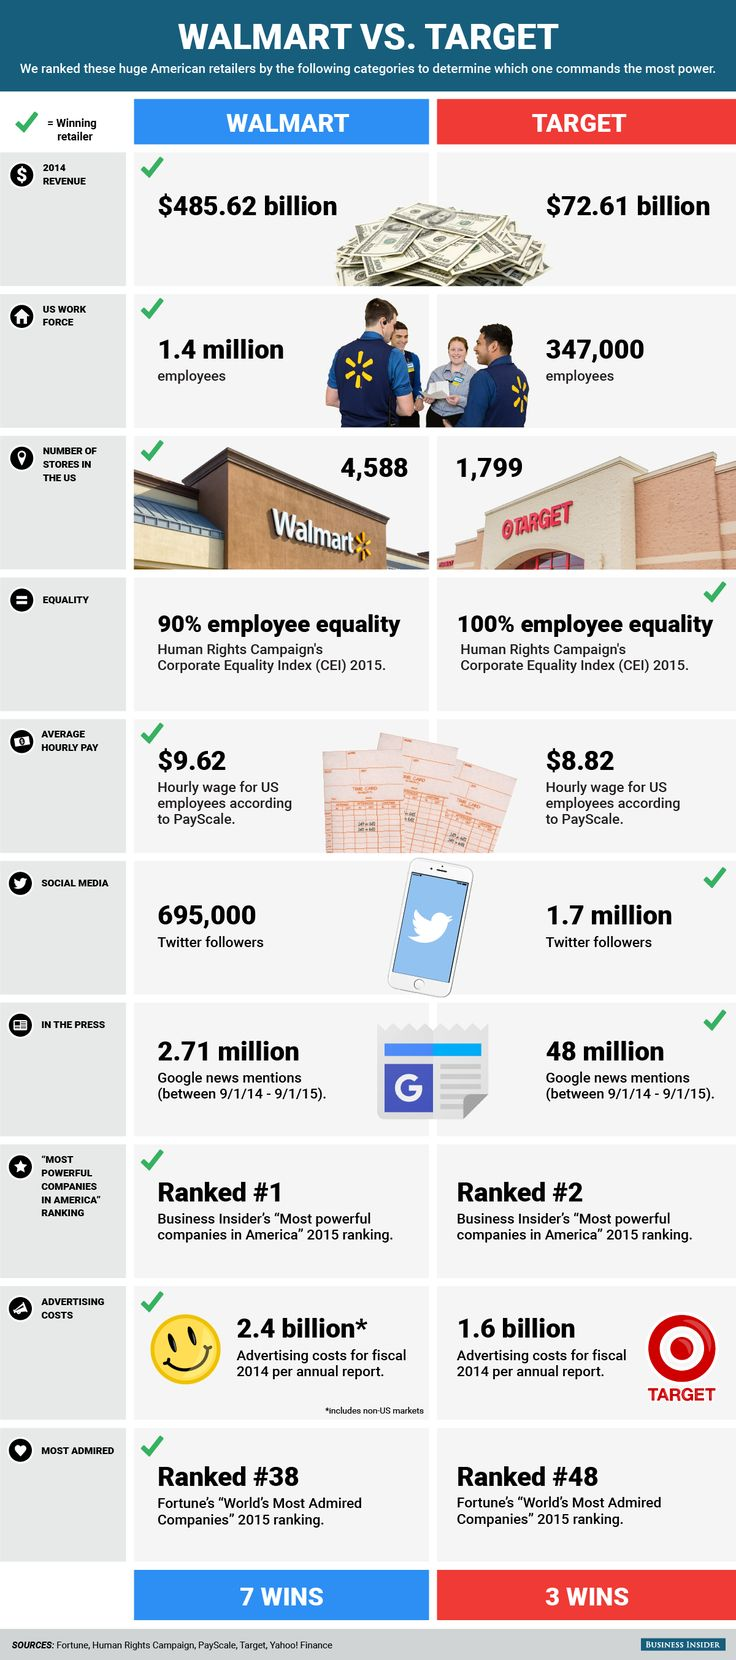 WALMART VS. TARGET Which retailer is more powerful